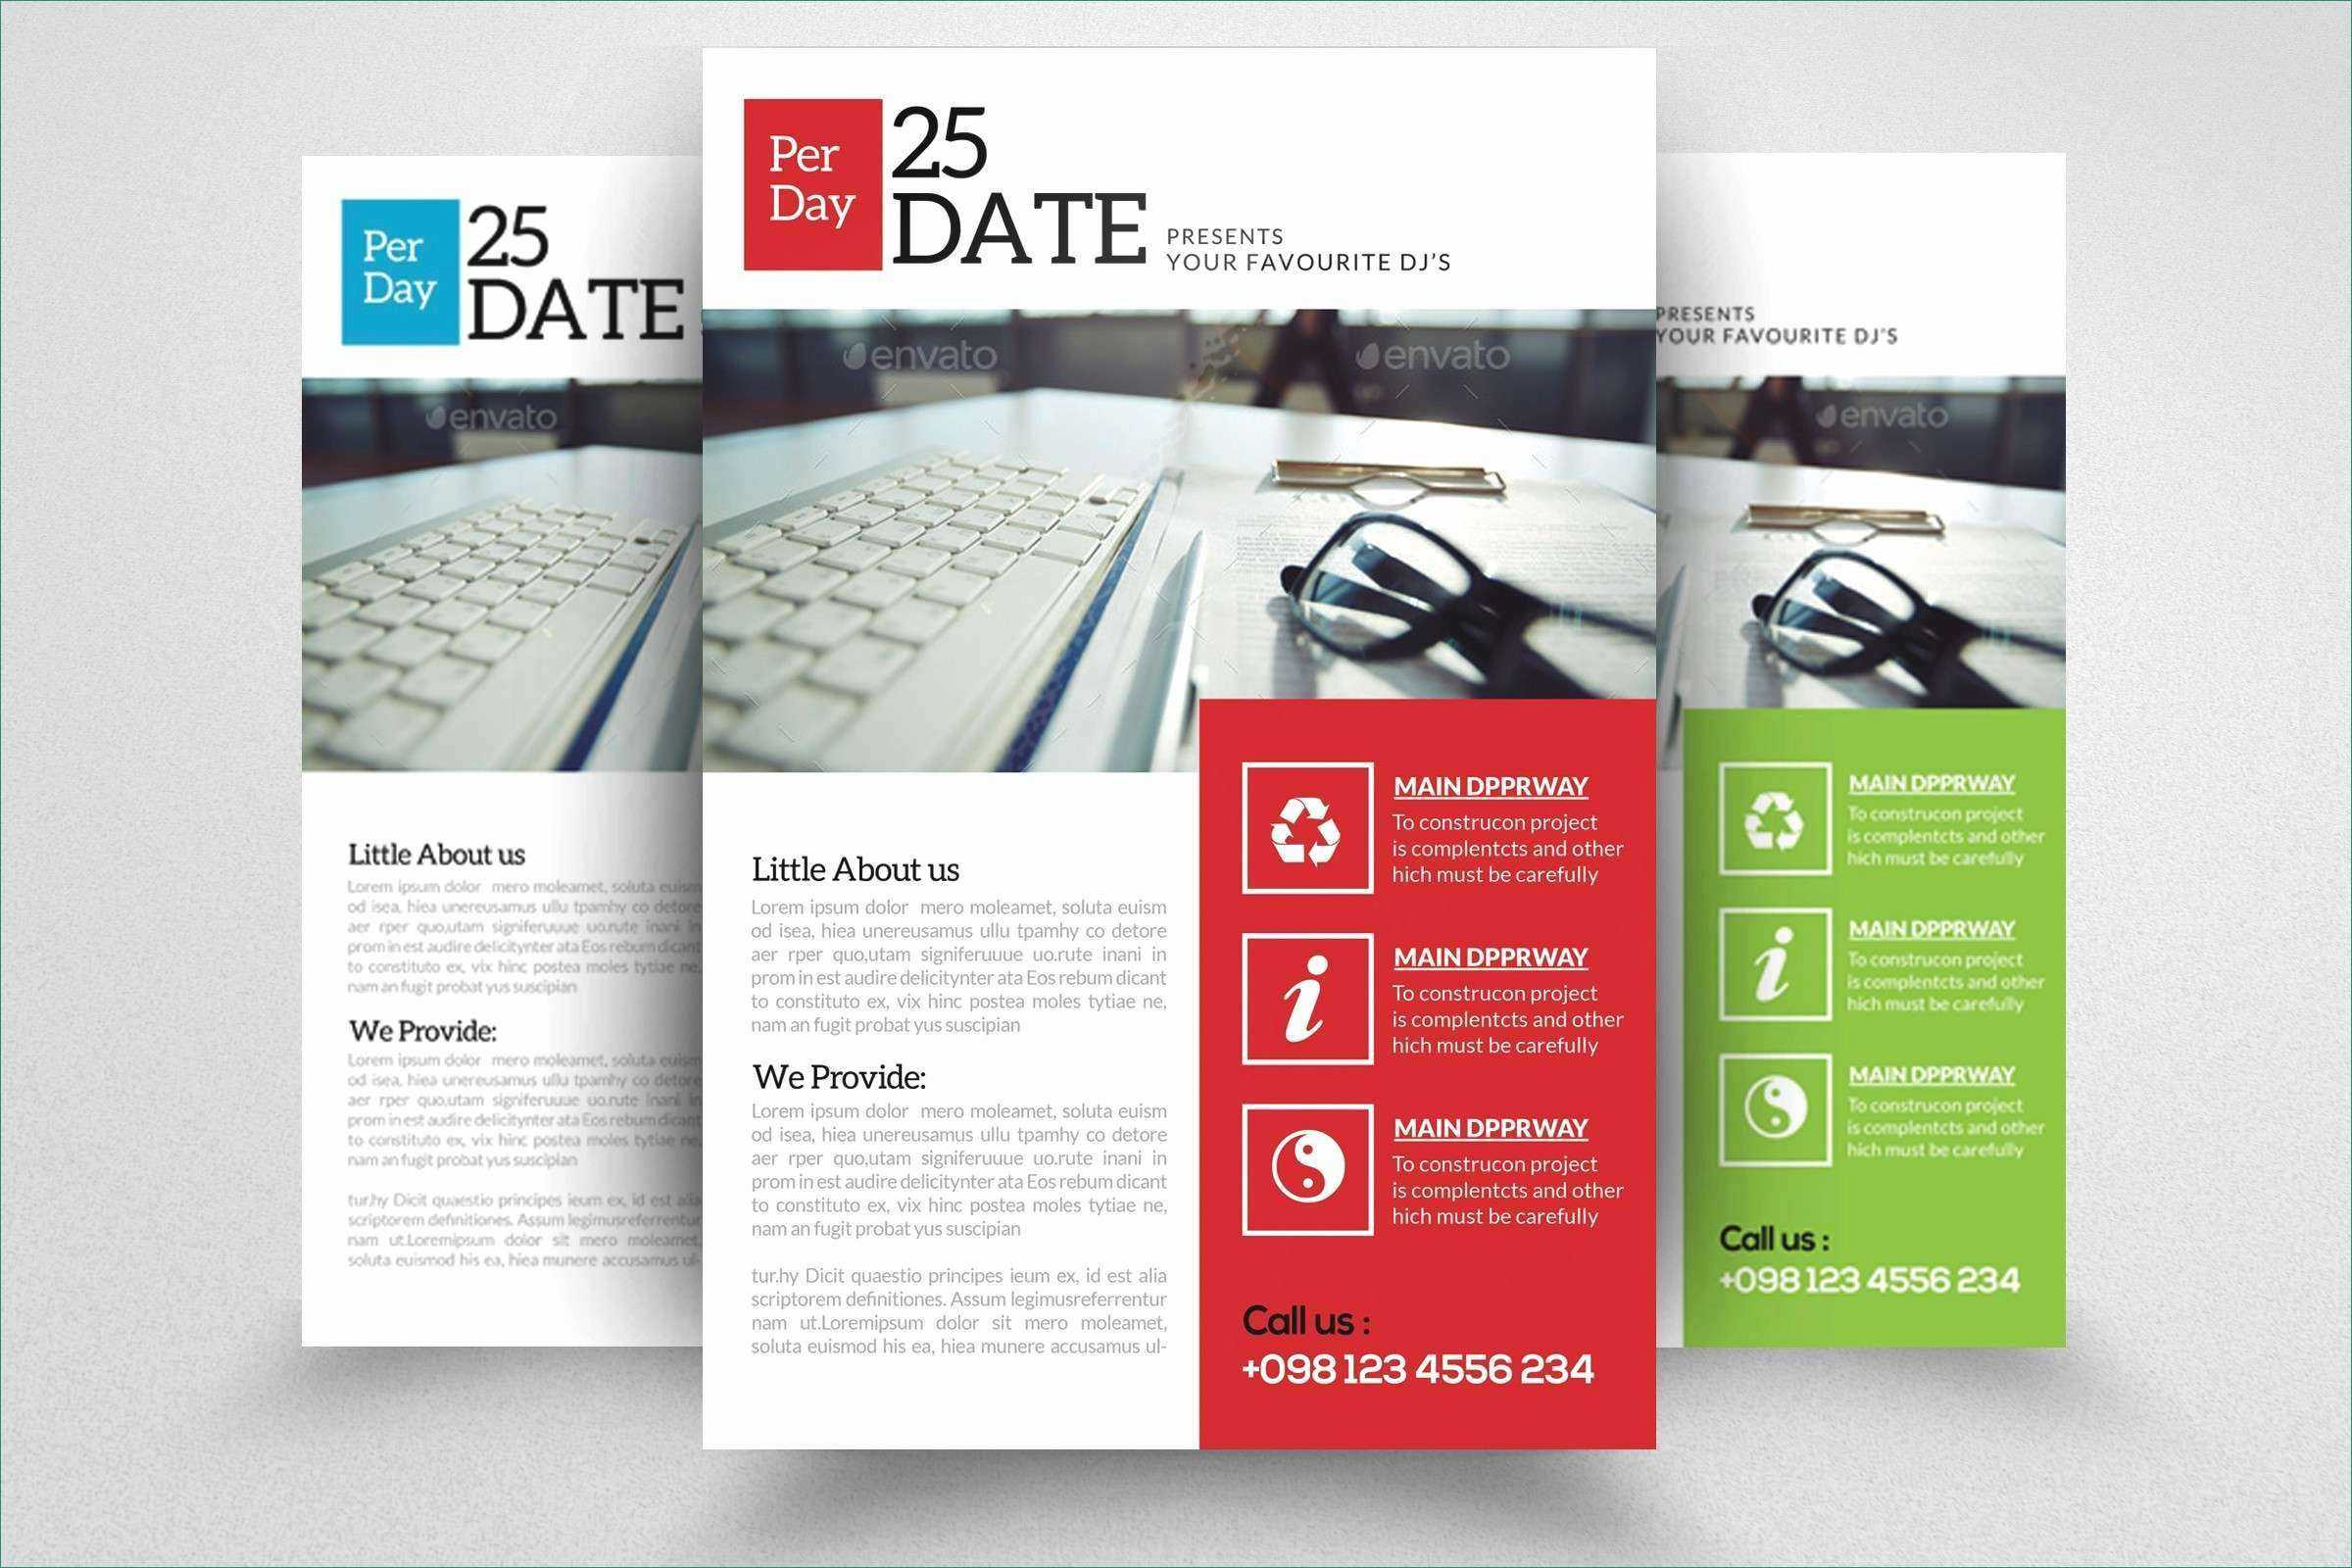 Powerpoint Business Card Template - Caquetapositivo with Business Card Template Powerpoint Free